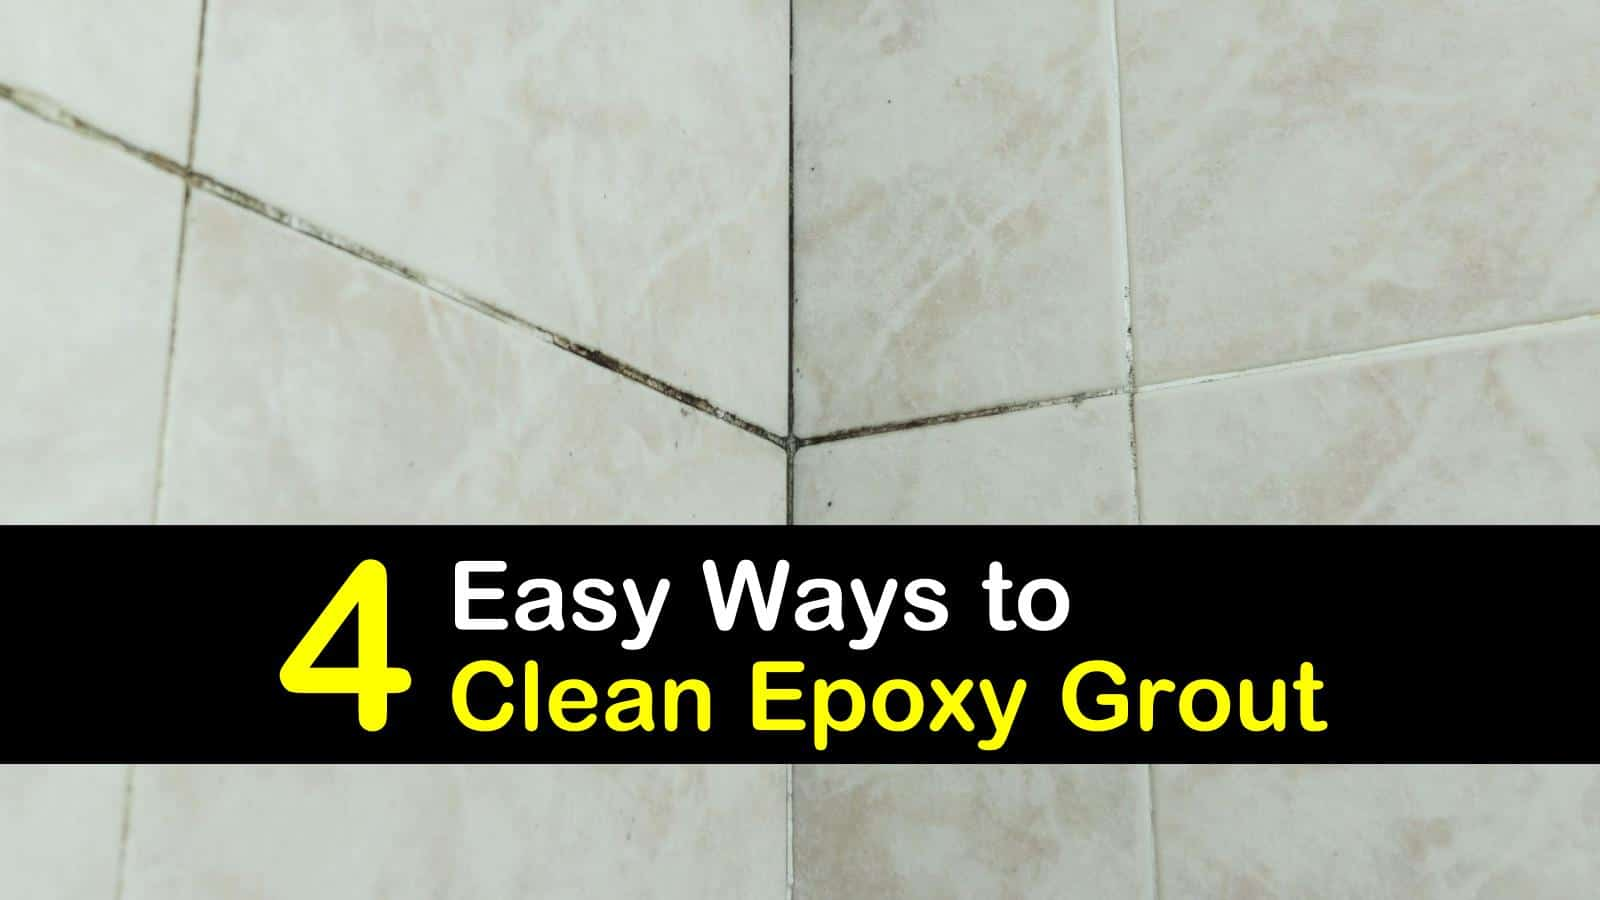 how to clean epoxy grout titleimg1